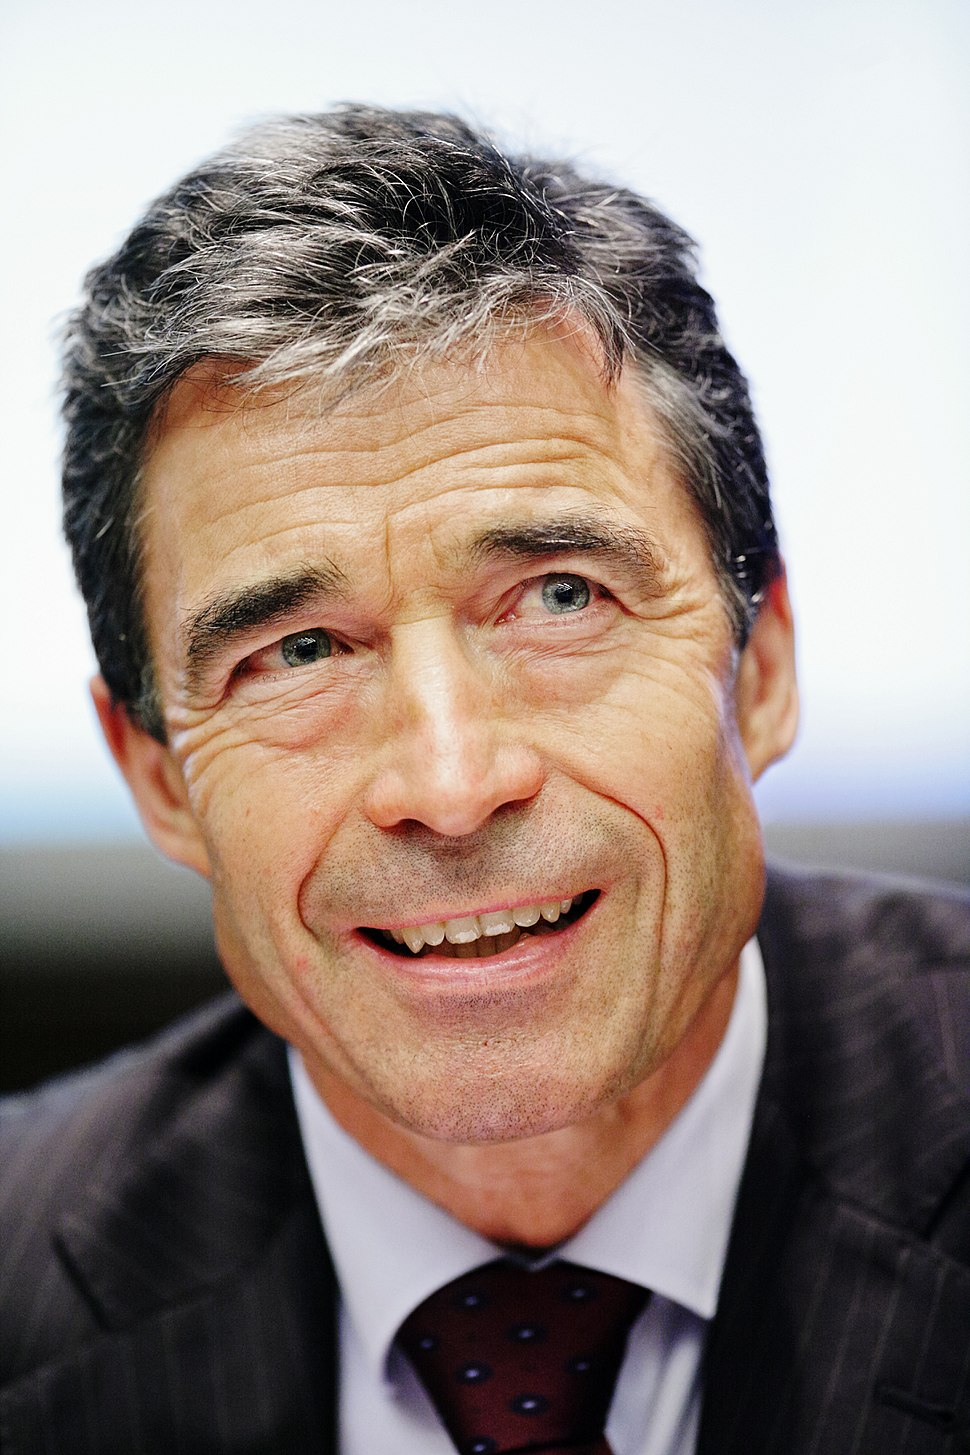 Former Danish Prime Minister Anders Fogh Rasmussen at the Nordic Council Session in Helsinki 2008-10-28